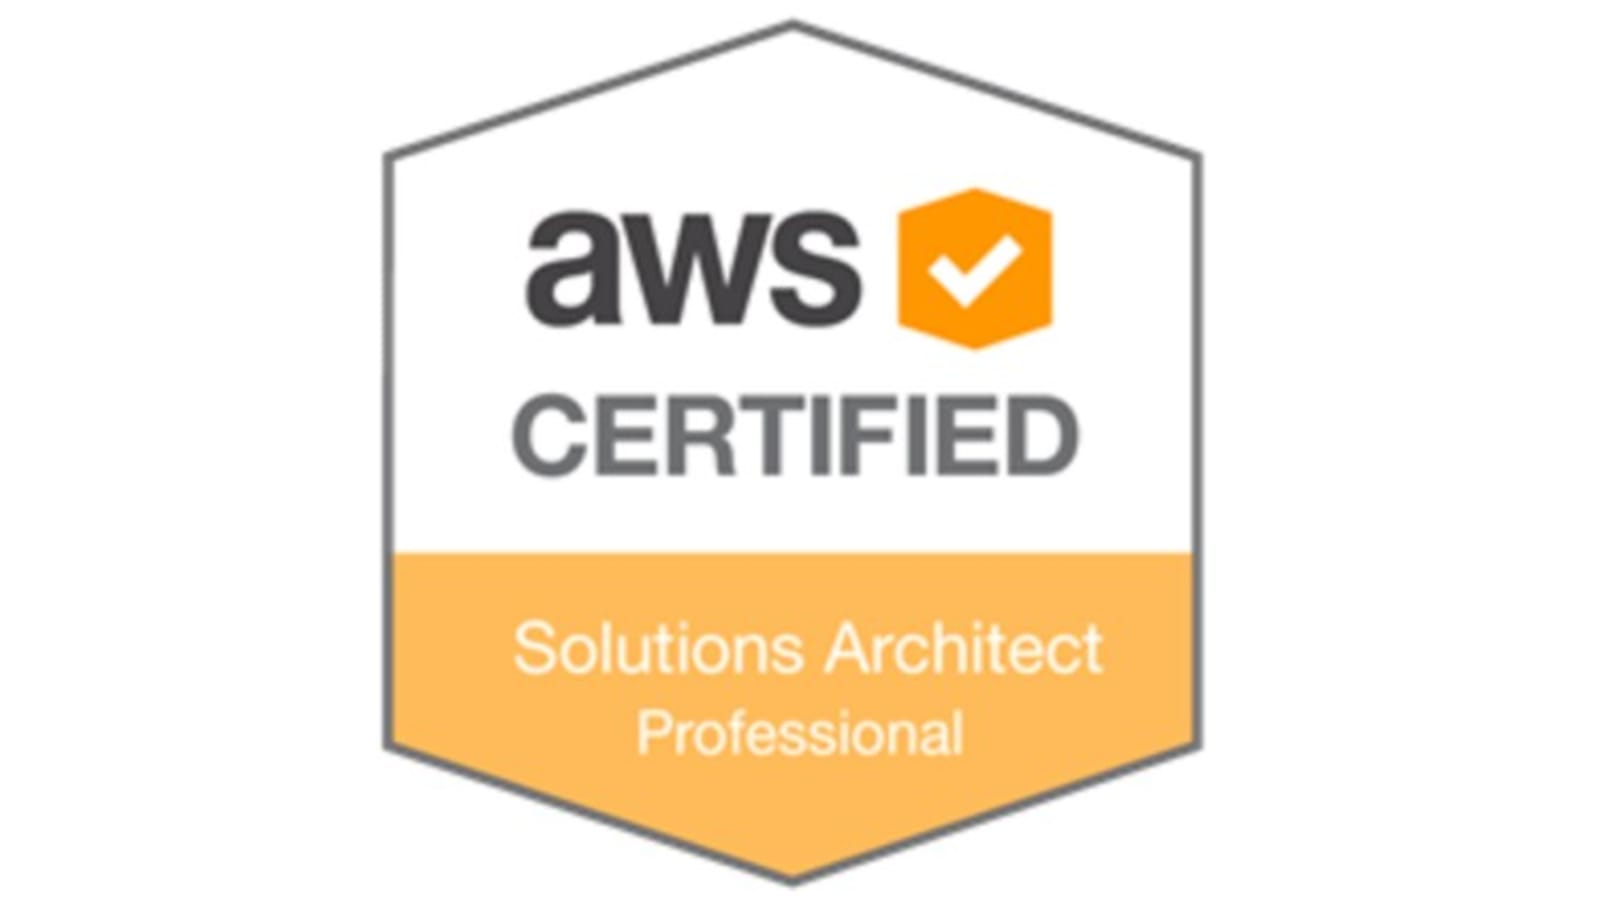 Amazon AWS Certified Solutions Architect